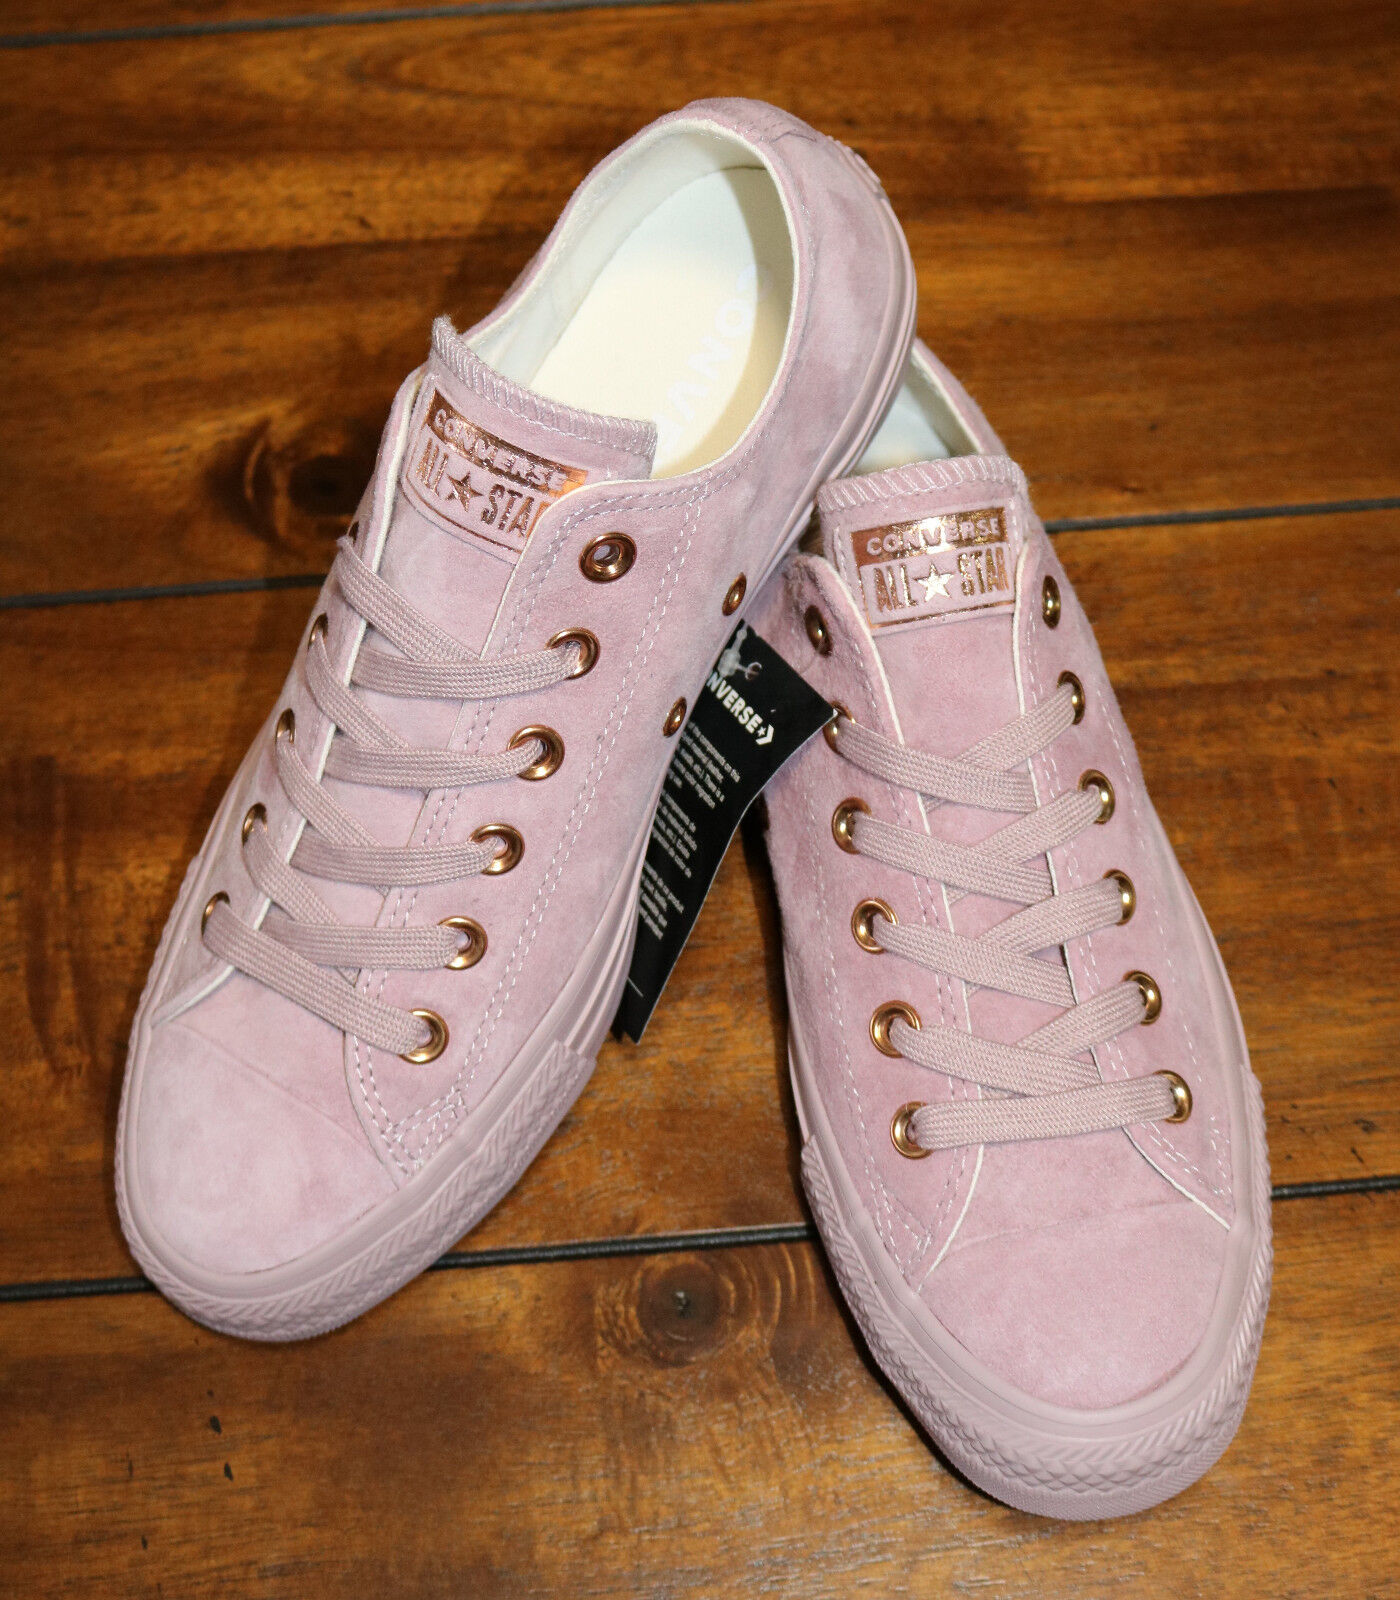 Details about CONVERSE WOMENS CHUCK TAYLOR ALL STAR OXFORD LOW TOP ROSE  GOLD/PINK SIZES 7 8 9